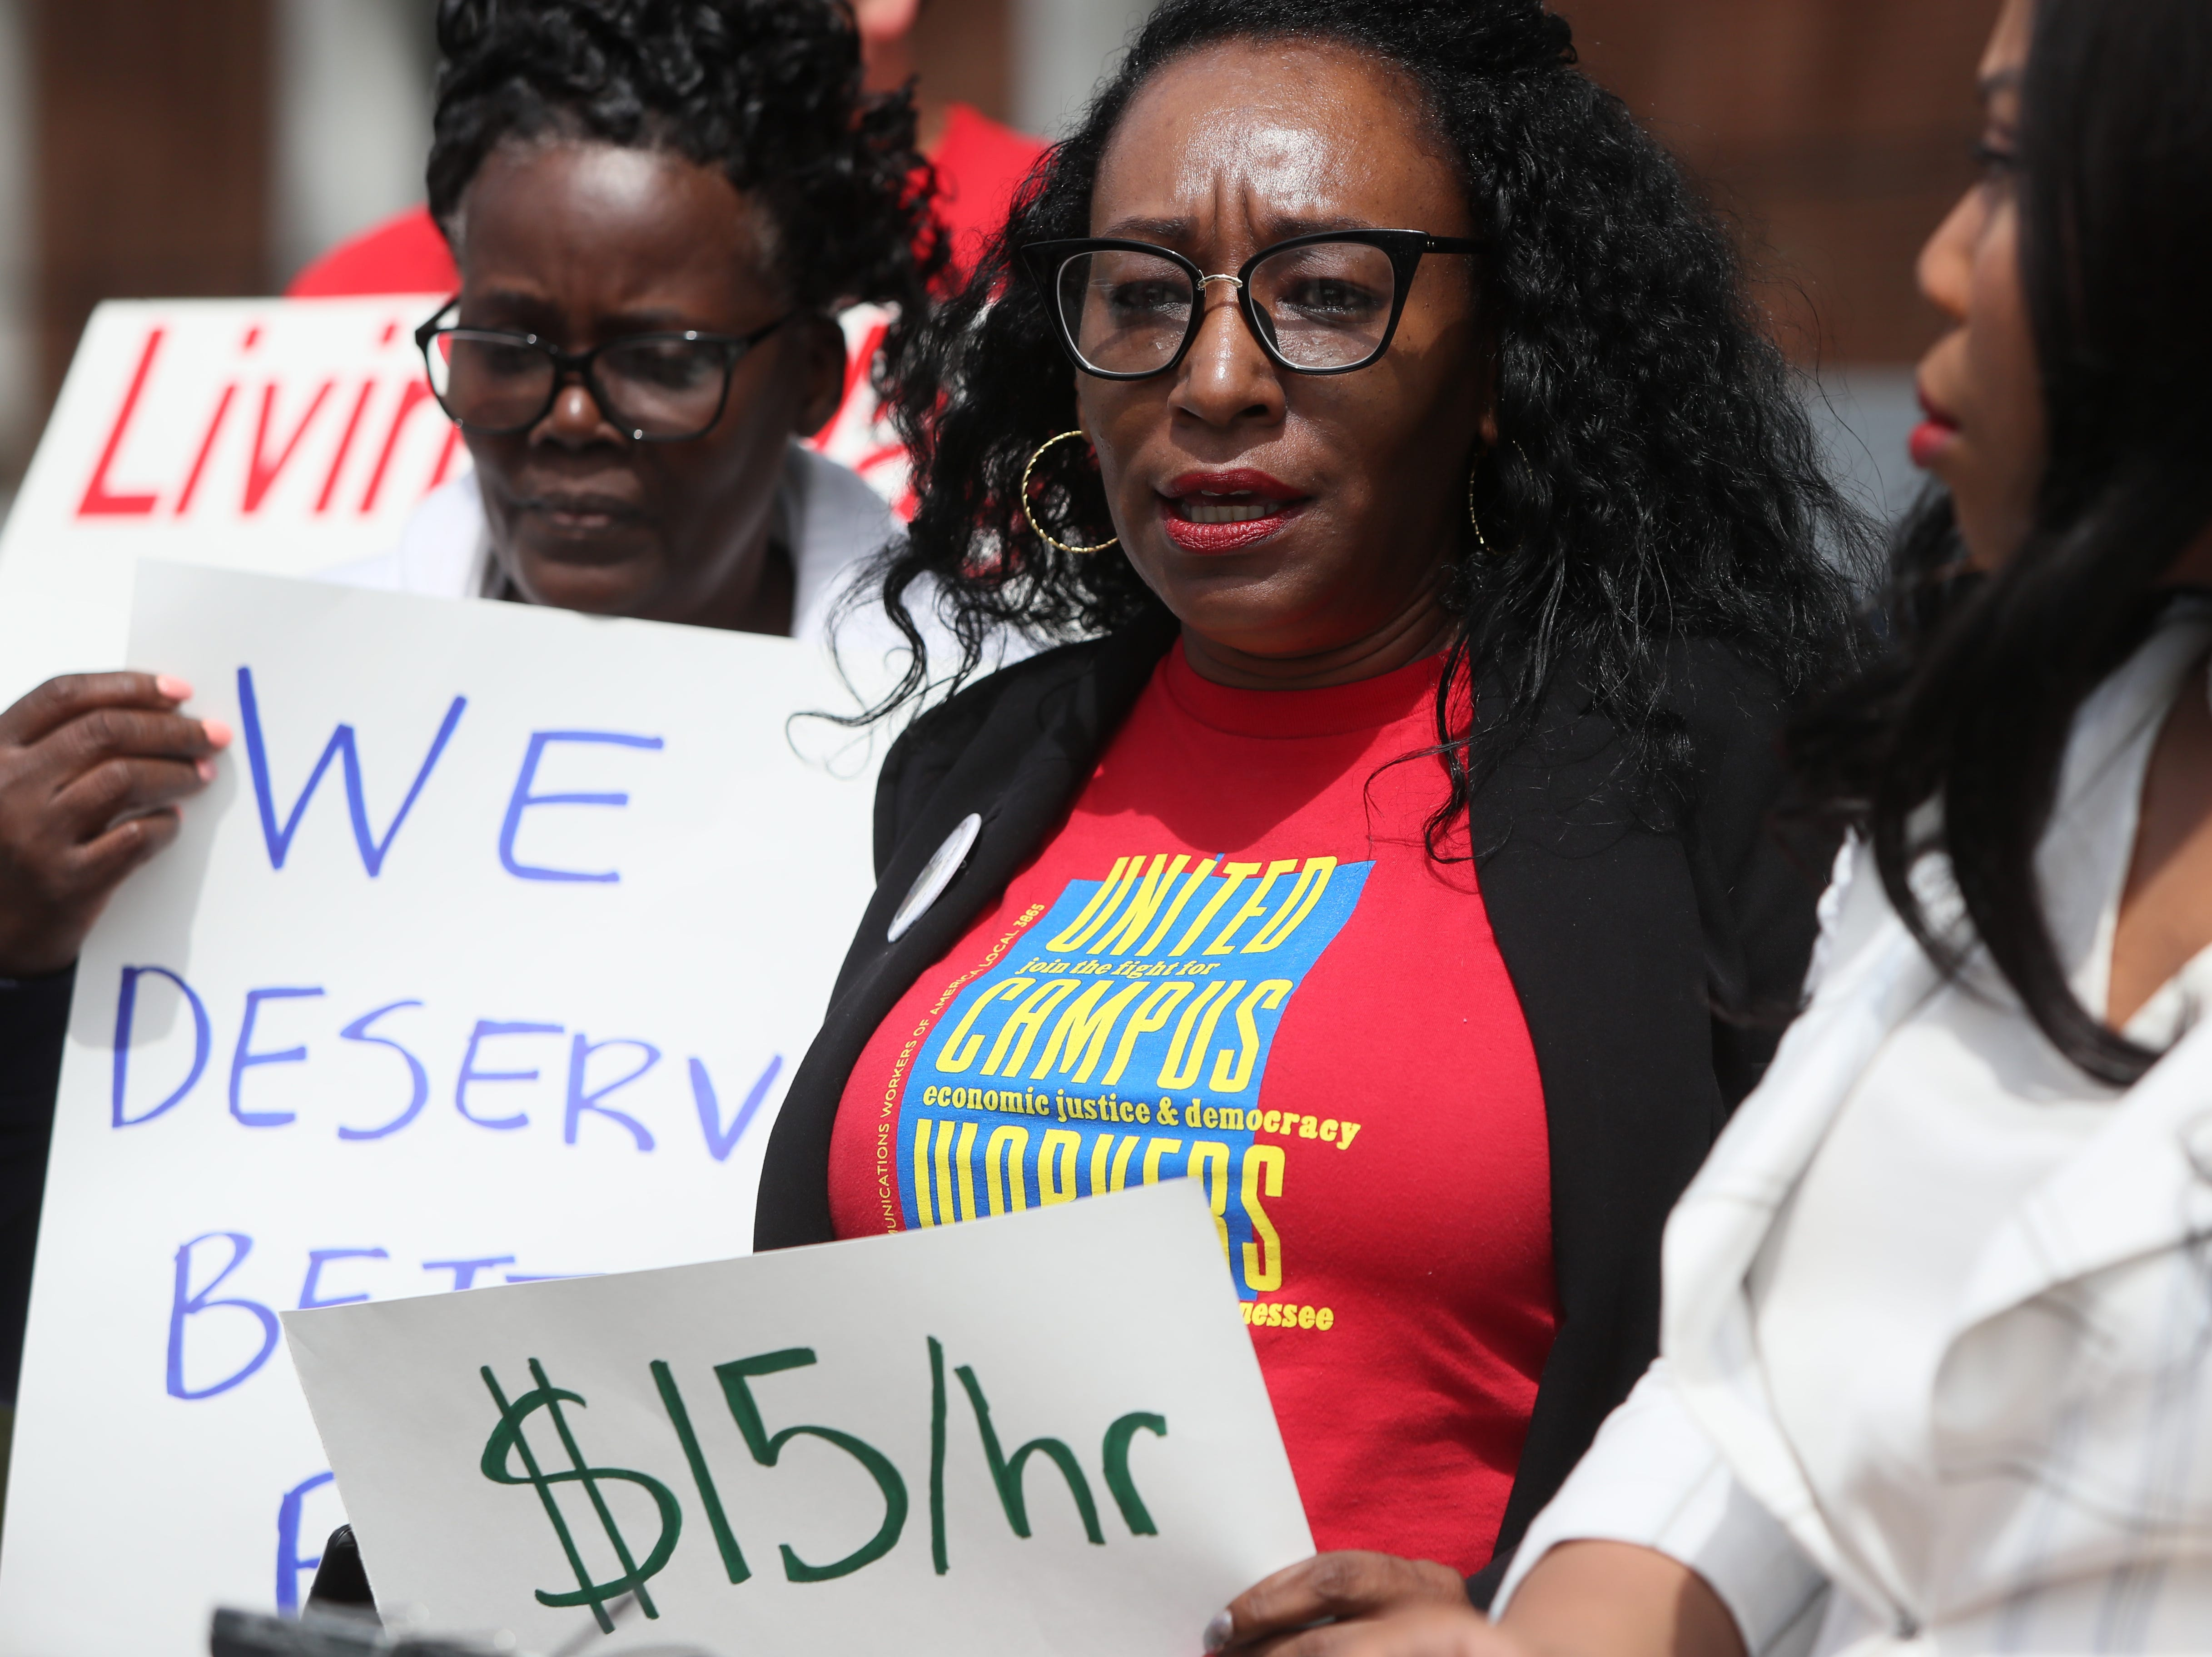 Margaret Cook, vice president of the Memphis chapter of United Campus Workers, speaks during a press conference to address implementing a $15 minimum hourly wage for all campus employees at the University of Memphis on Friday, April 12, 2019.